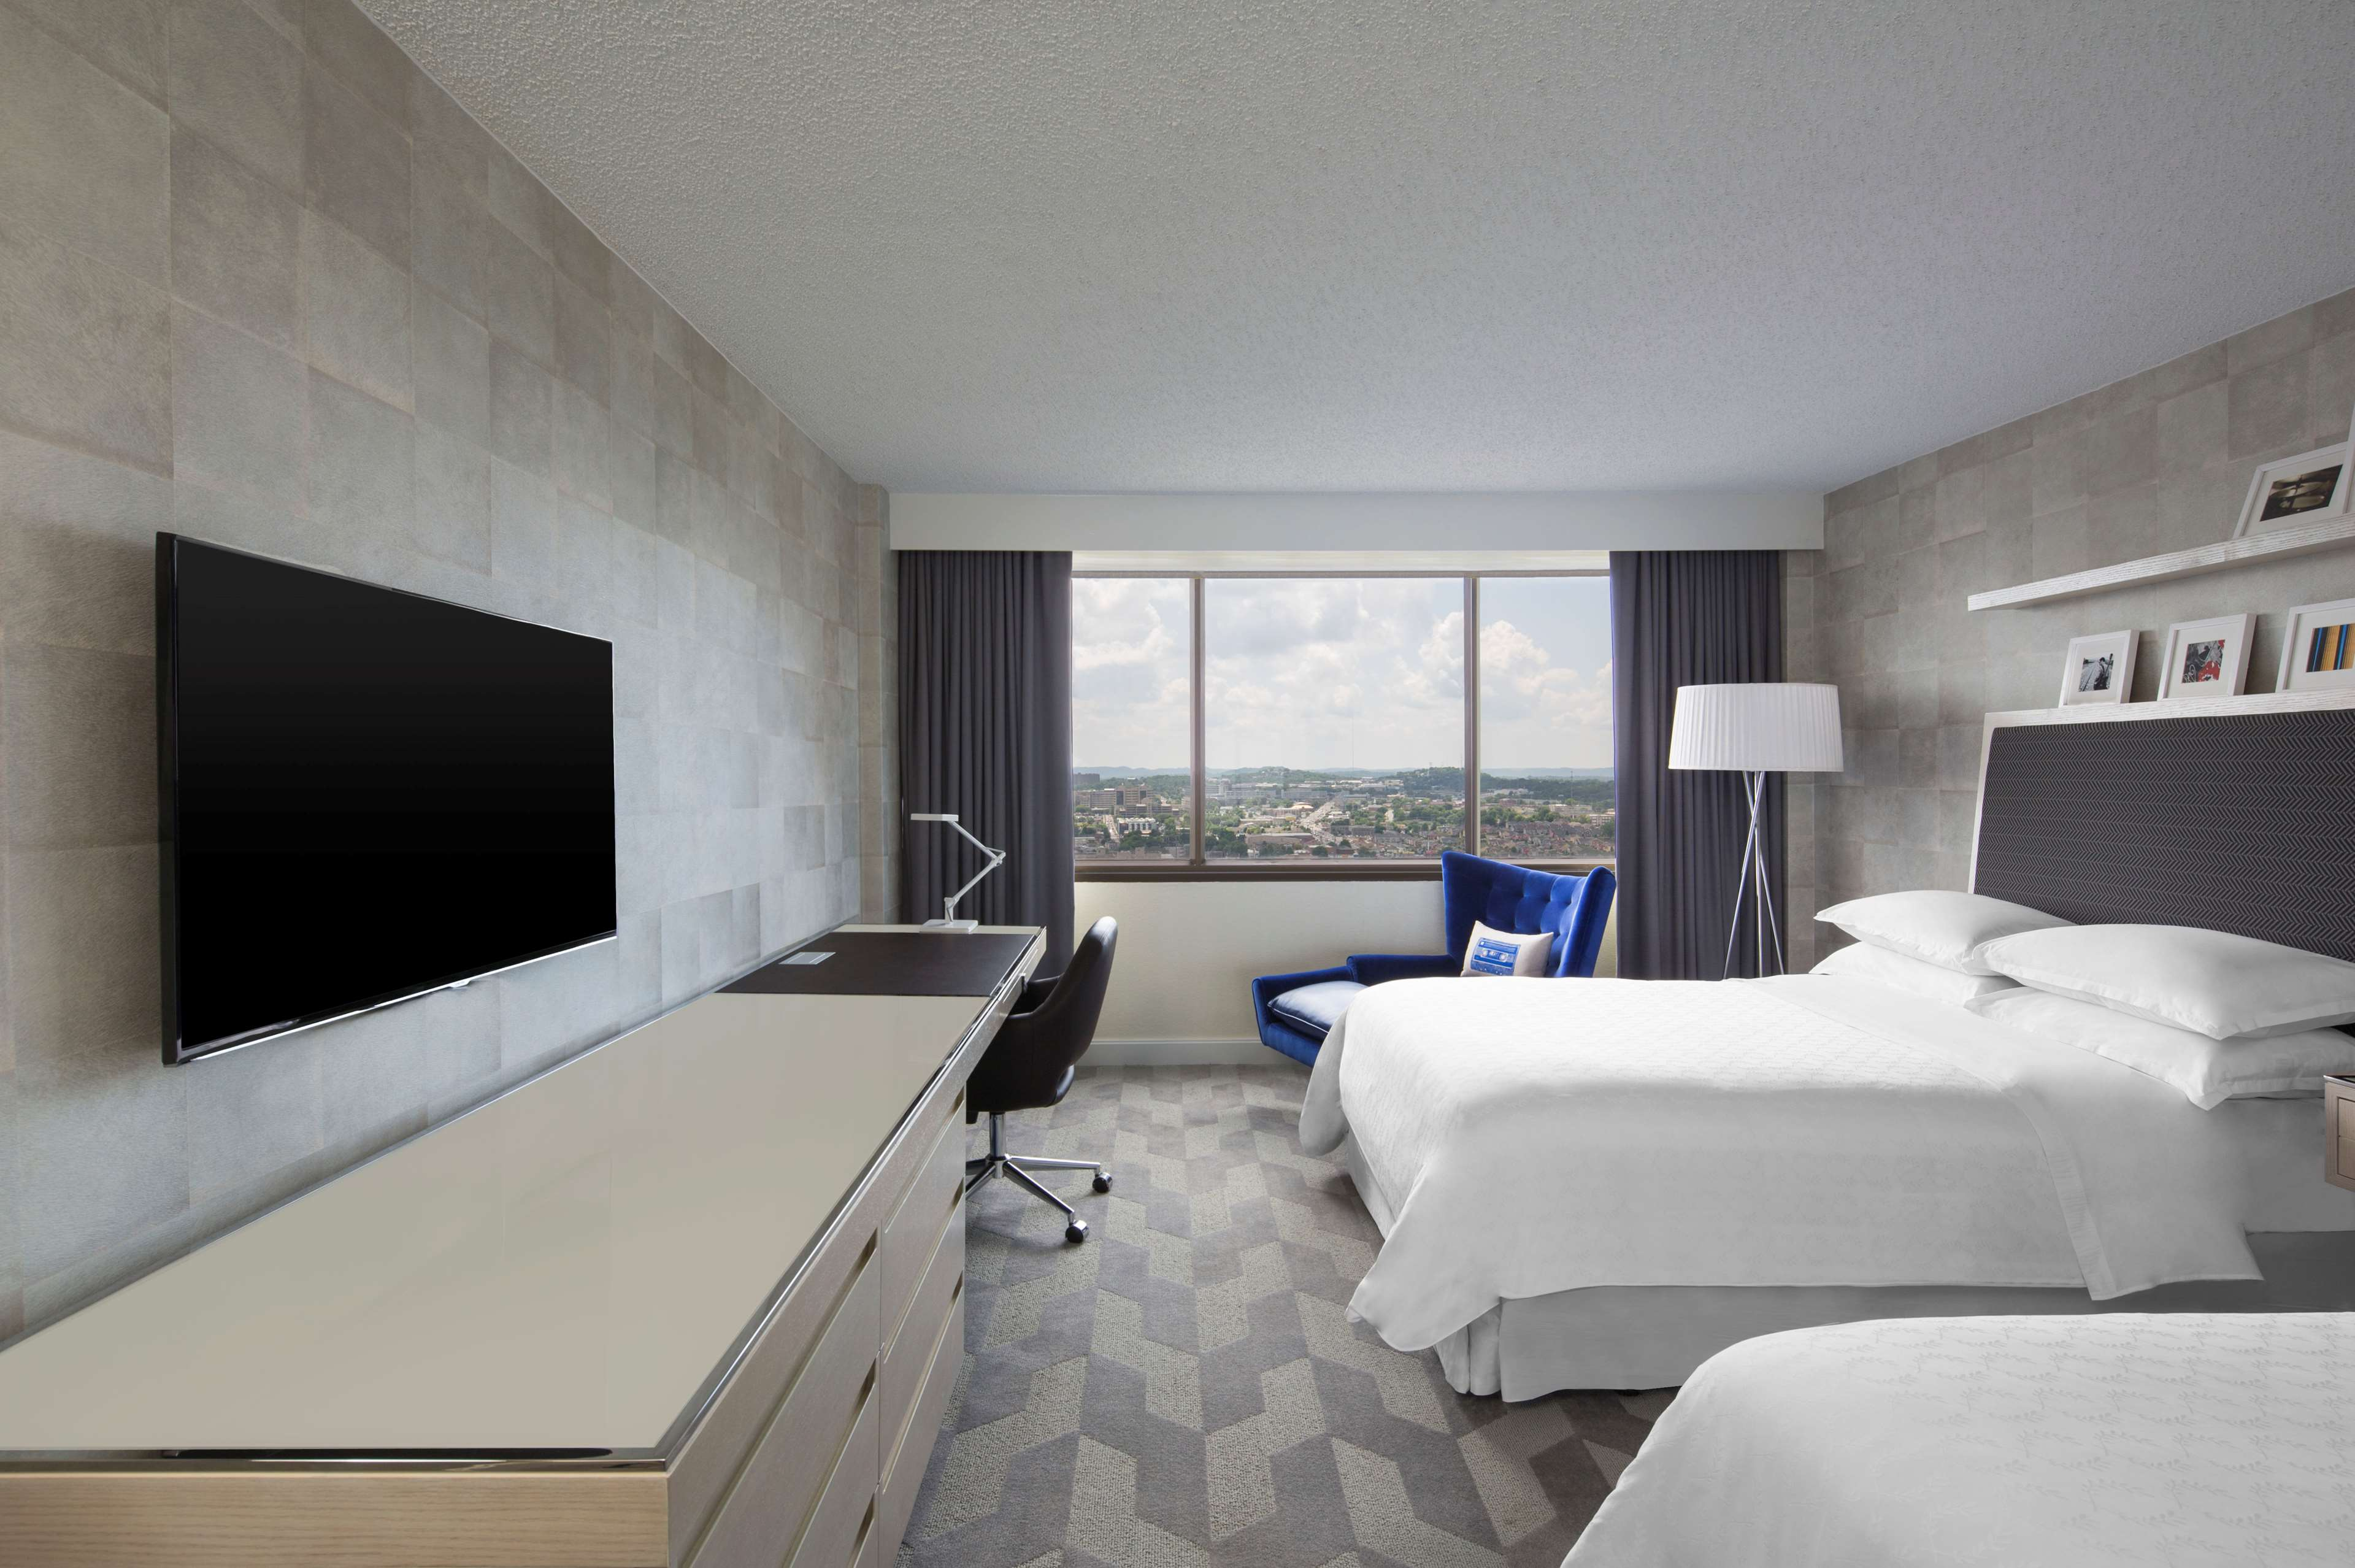 Sheraton grand nashville downtown at 623 union street Two bedroom suites in downtown nashville tn